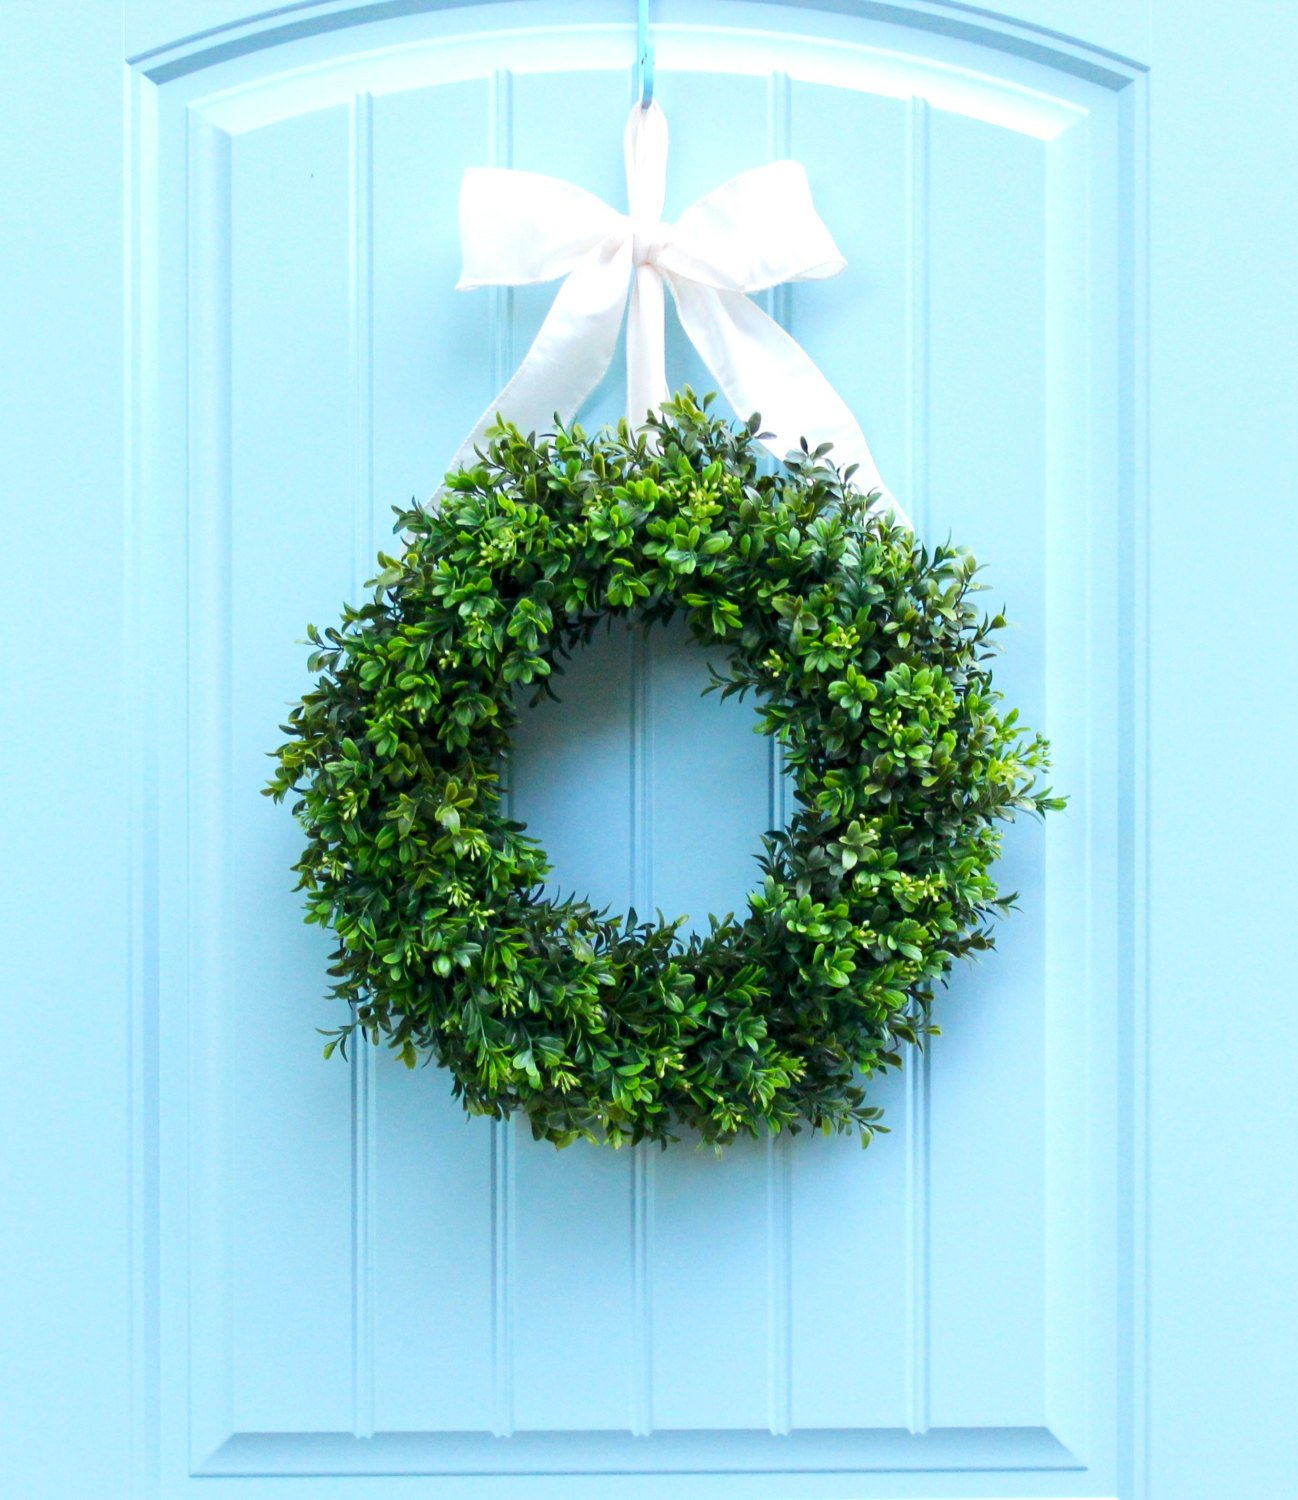 Boxwood Wreath  - All Season Wreath - Artificial Boxwood Door Wreath - Choose Size